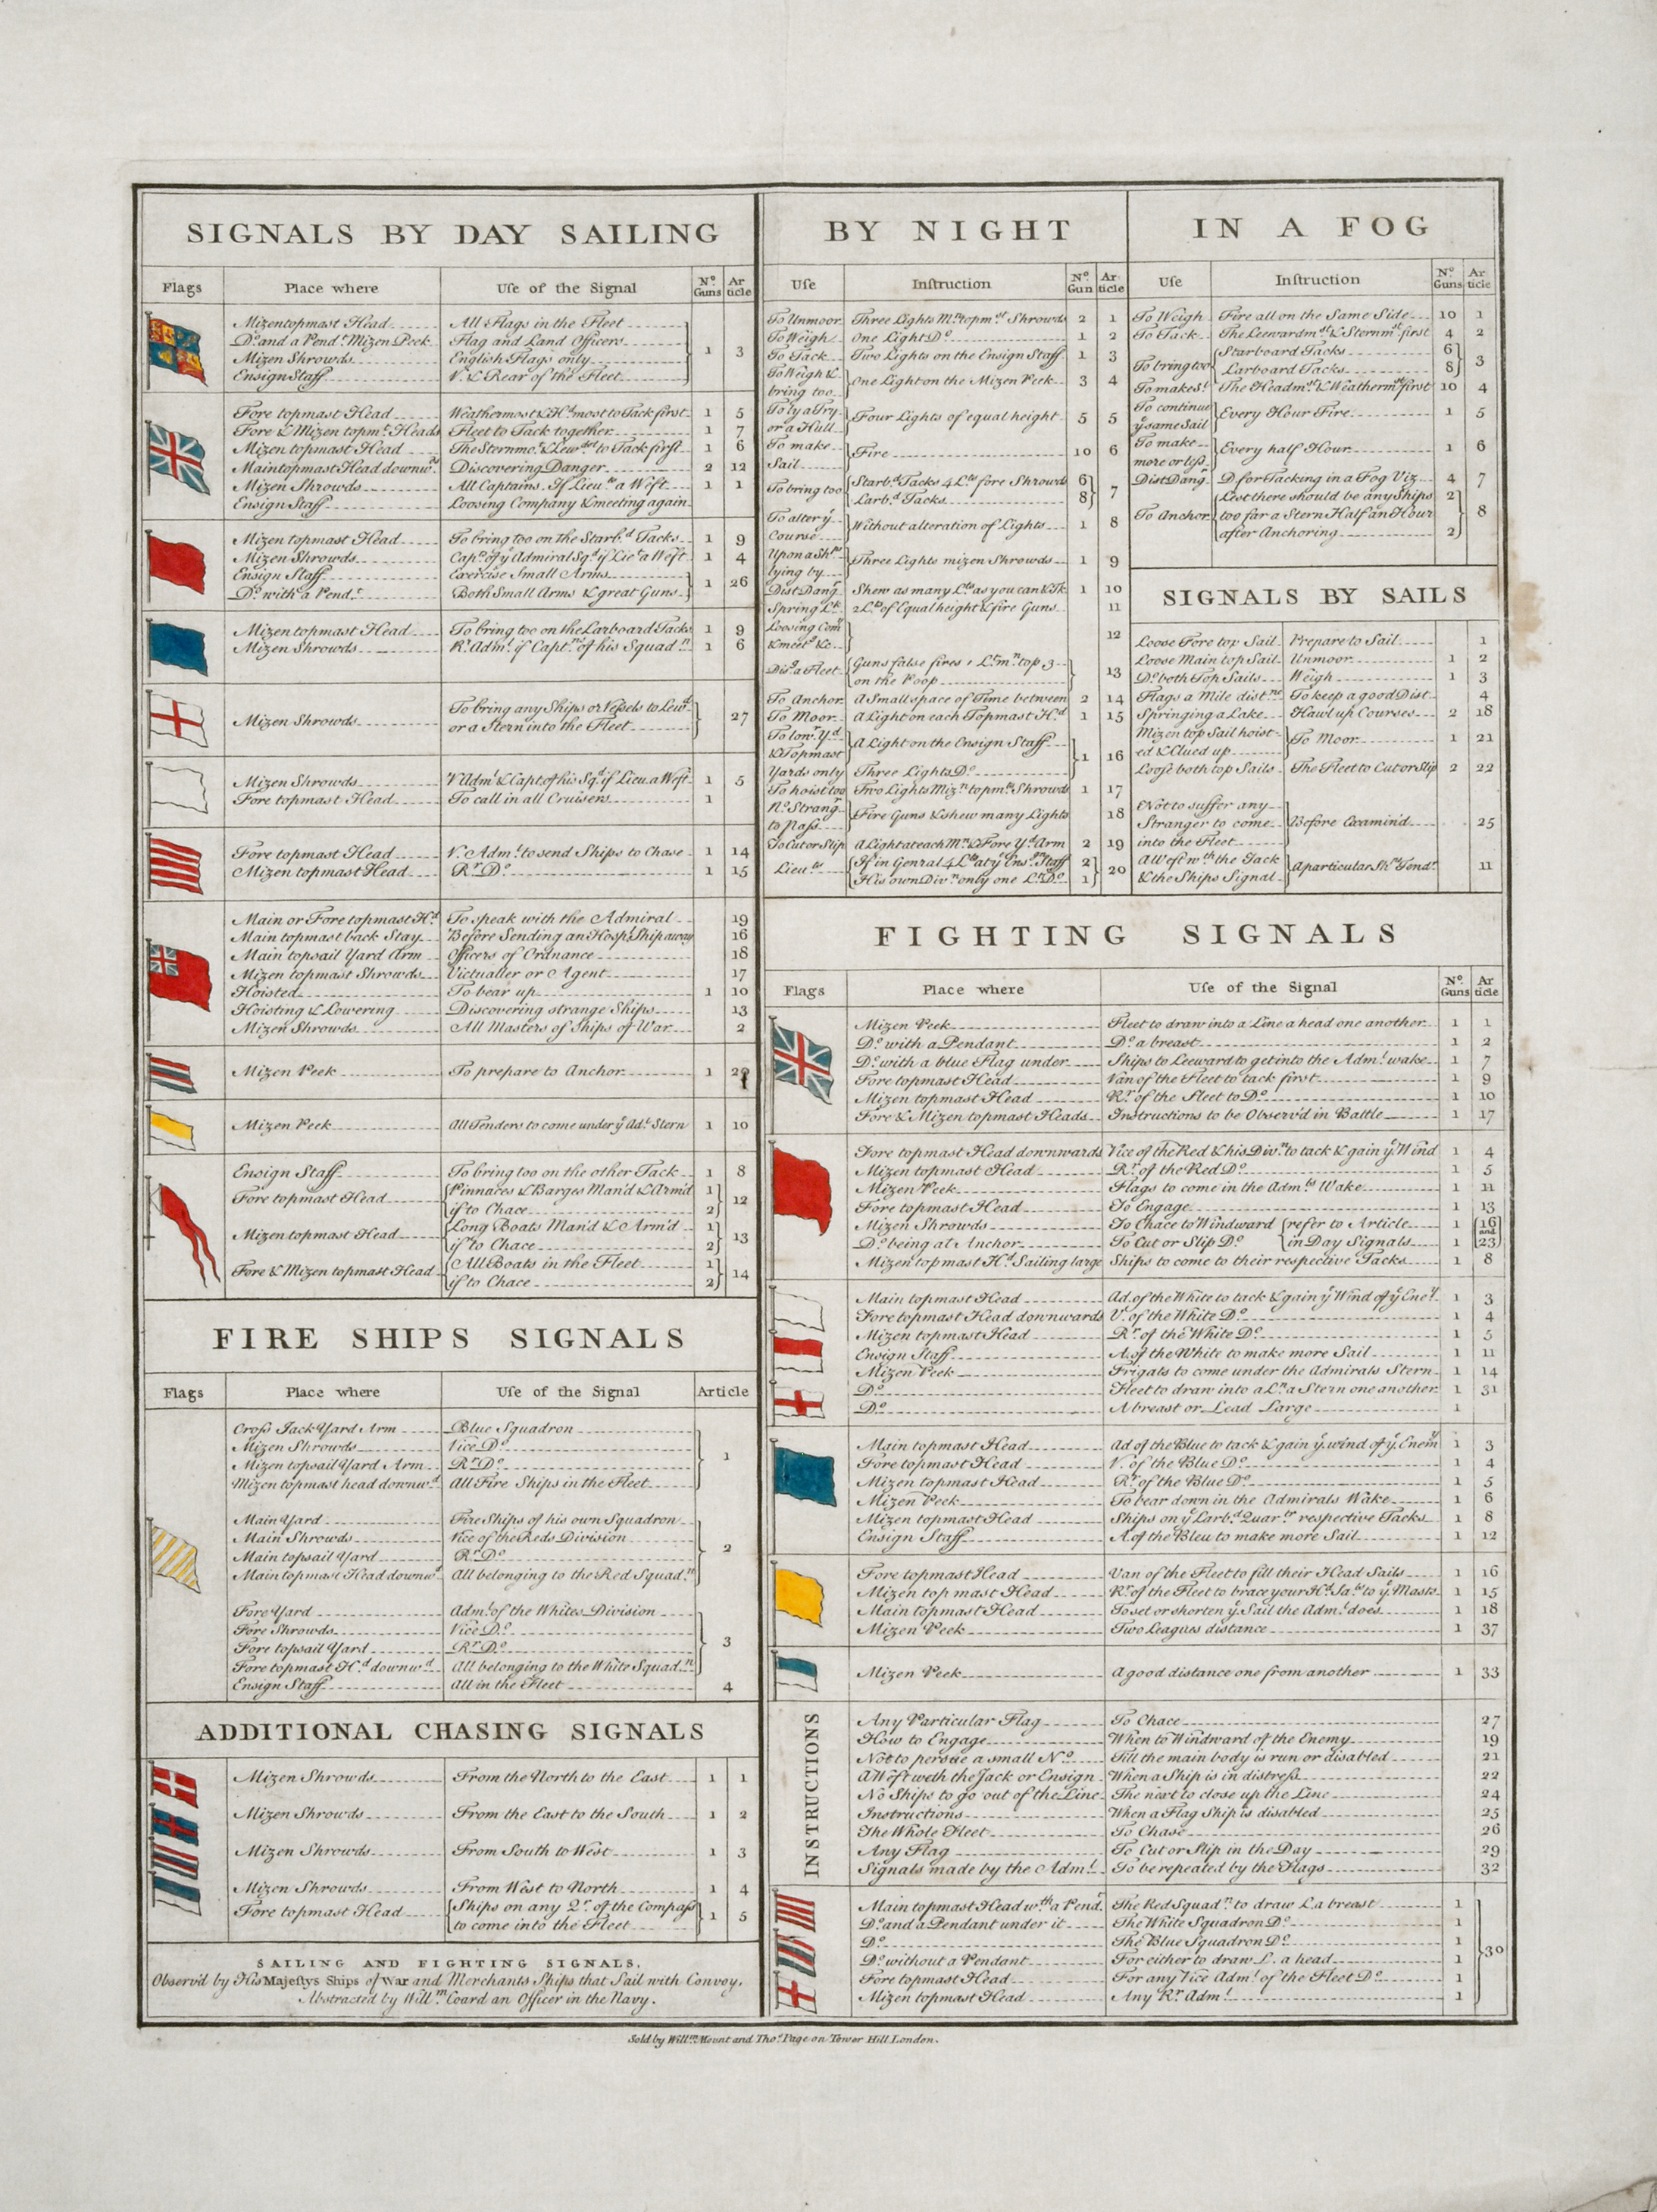 Sailing and Fighting Signals, Observ'd by His Majesty's Ships of War and Merchants Ships that Sail with Convoy, William Coard, London: Sold by Willm. Mount and Thos. Page, [ca. 1750]